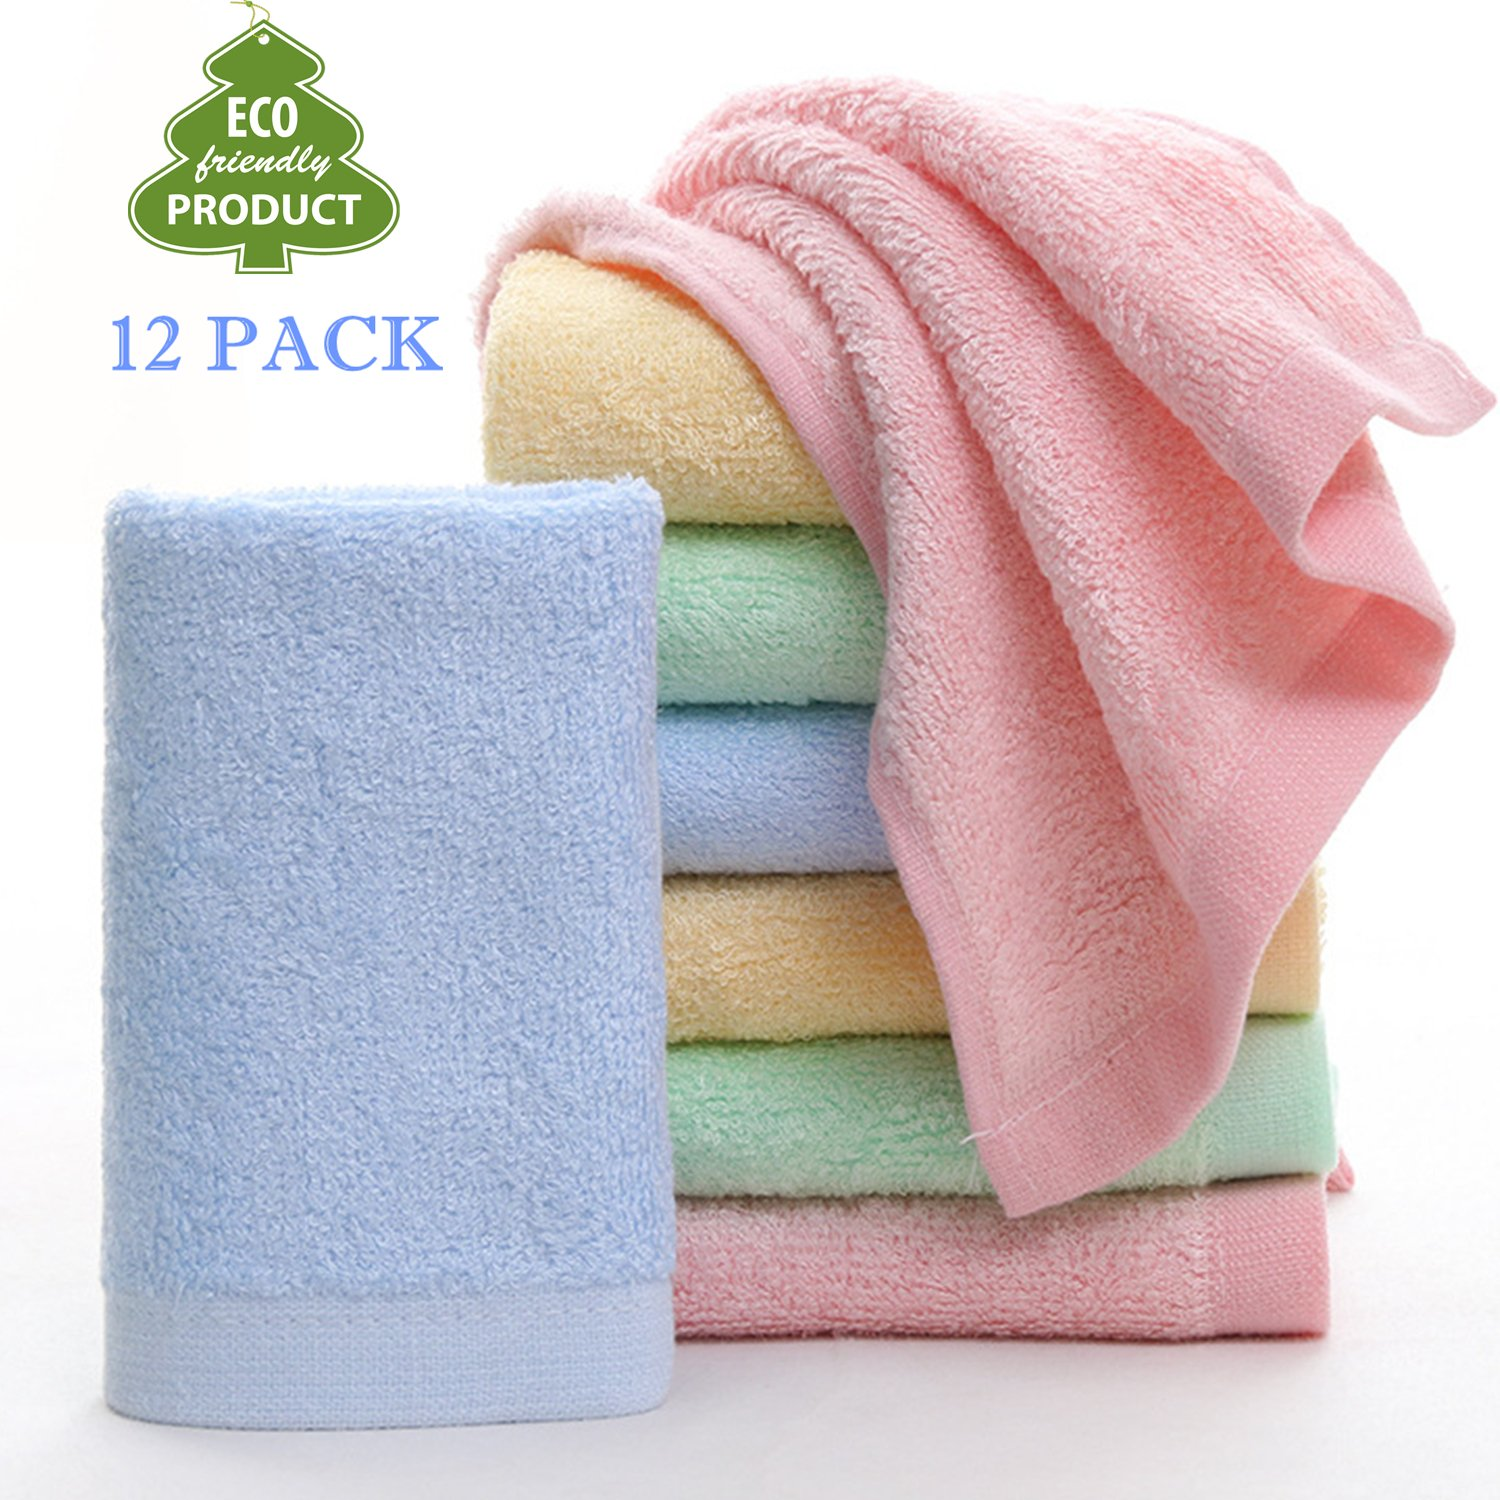 Baby Washcloths Natural Organic Washcloth Bamboo, Baby Face Towels - Extra Soft For Newborn/Infant/Kids/Adults - Ultra Soft For Baby Registry as Shower Gift Set By Leepem baby,11.8x11.8inch. (12 Pack)